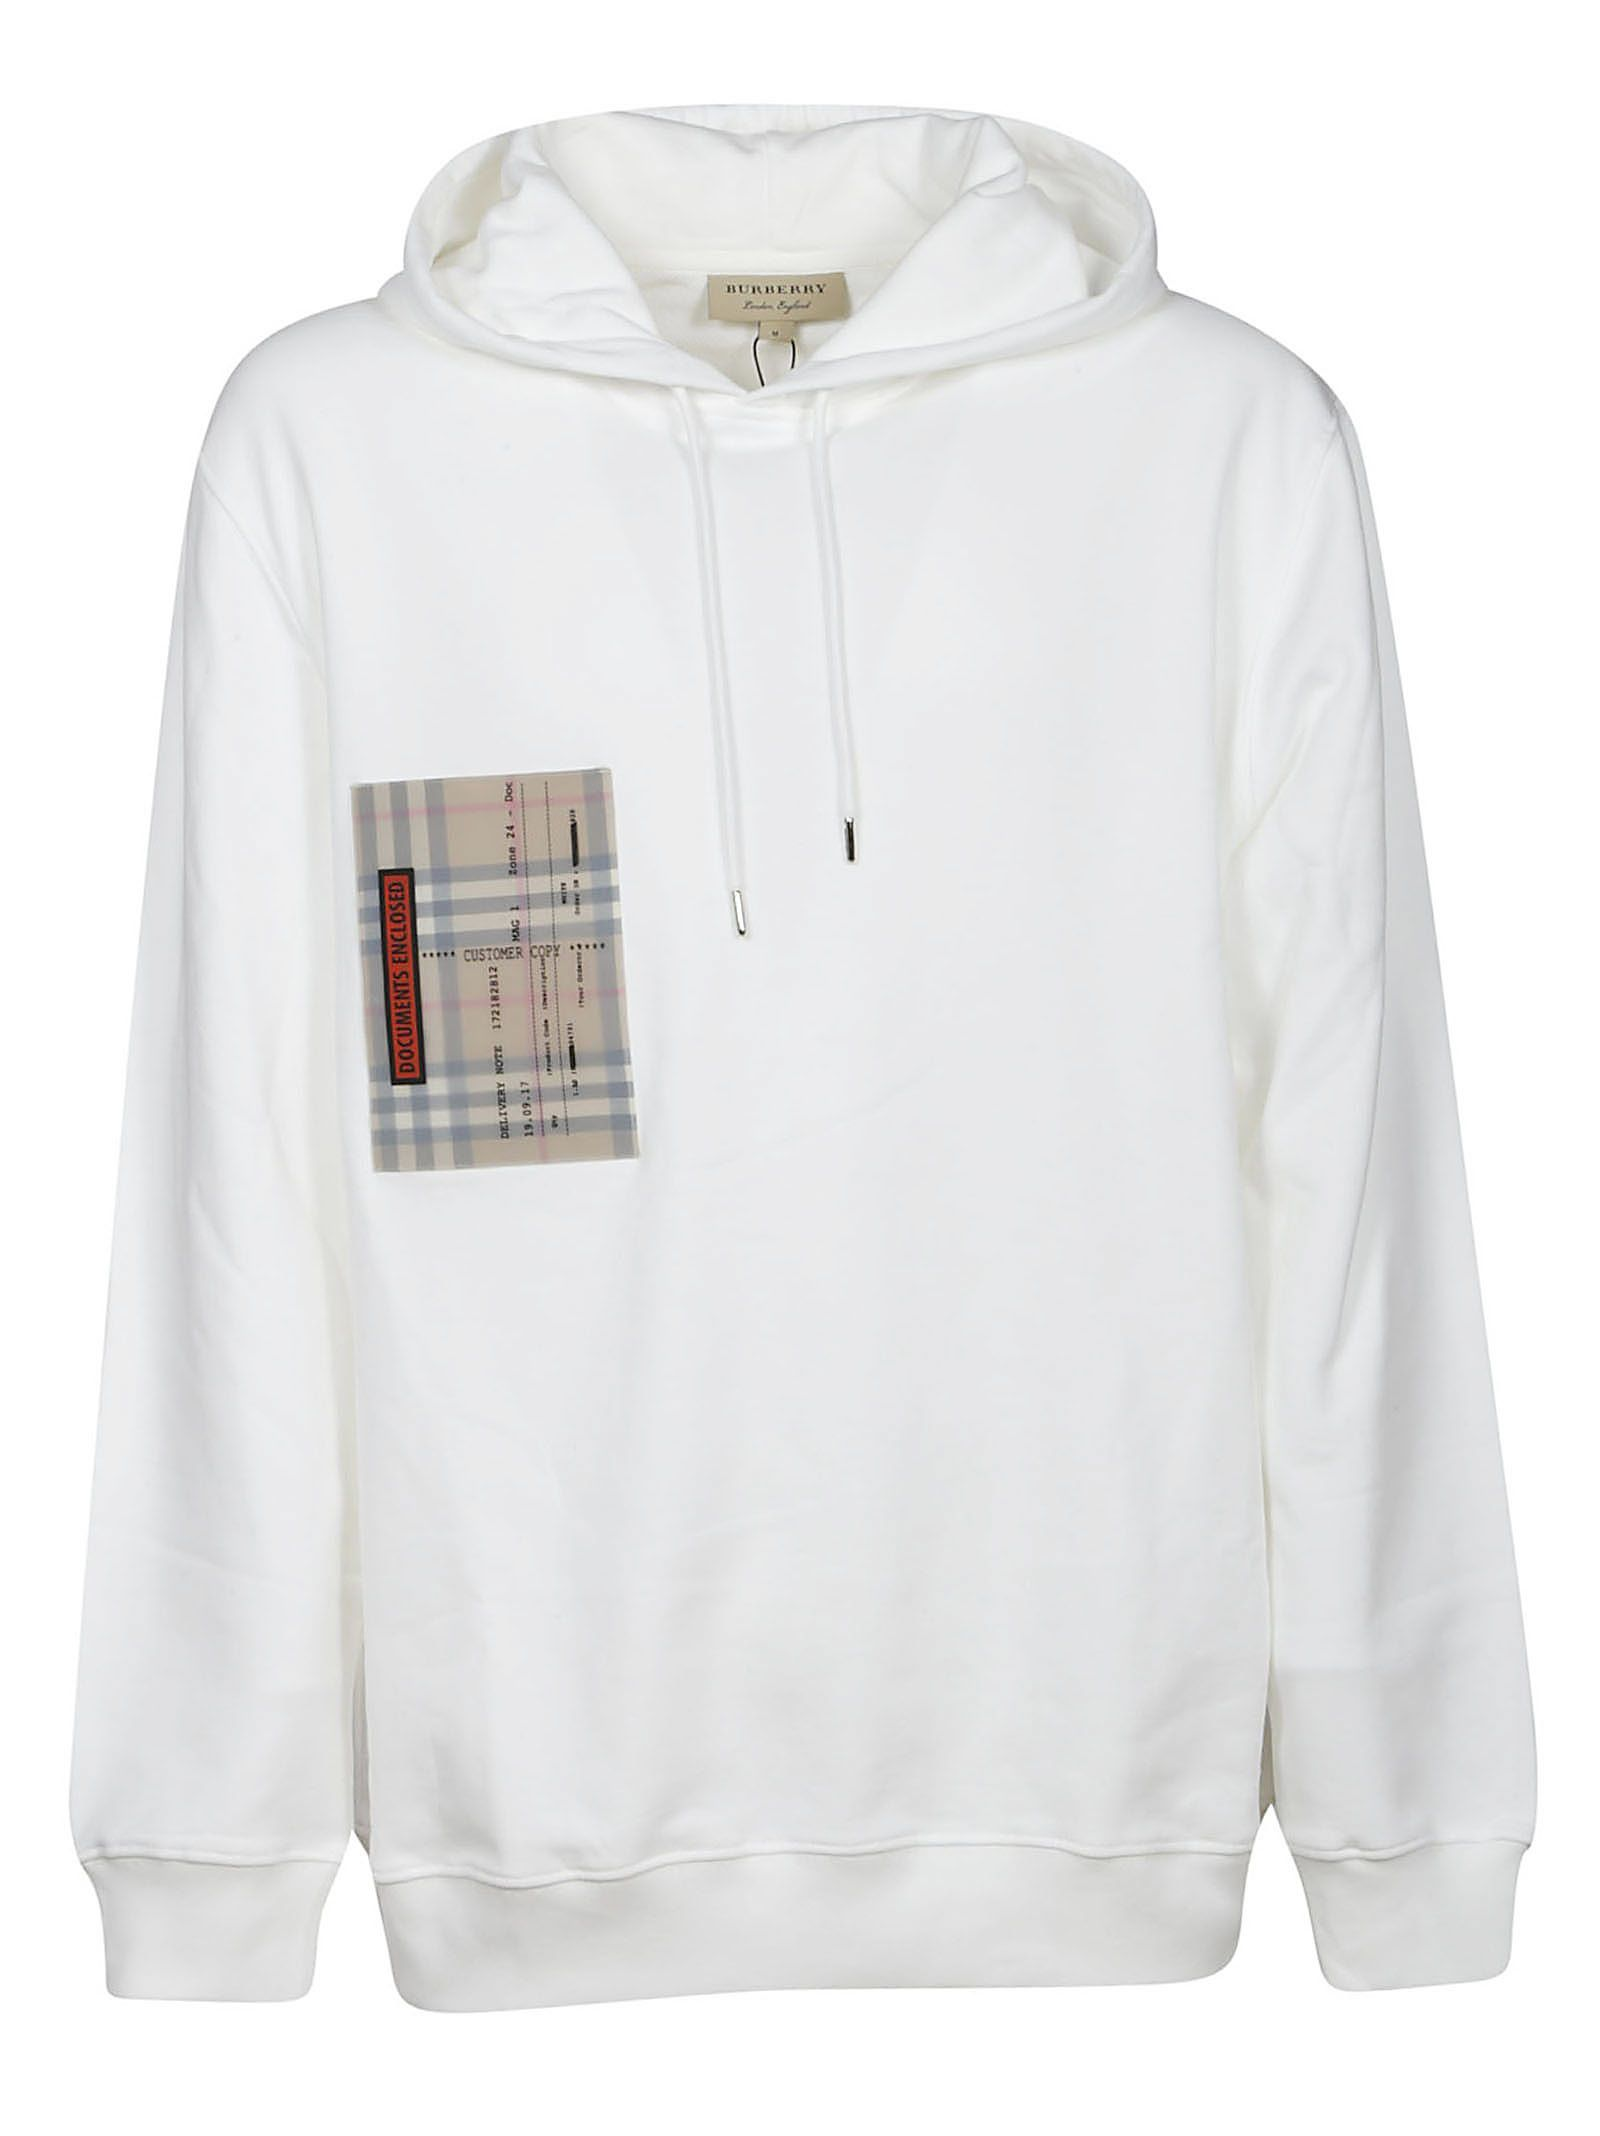 Burberry Check Pocket Hoodie In White Modesens Pocket Hoodie Hoodies Burberry [ 2136 x 1600 Pixel ]